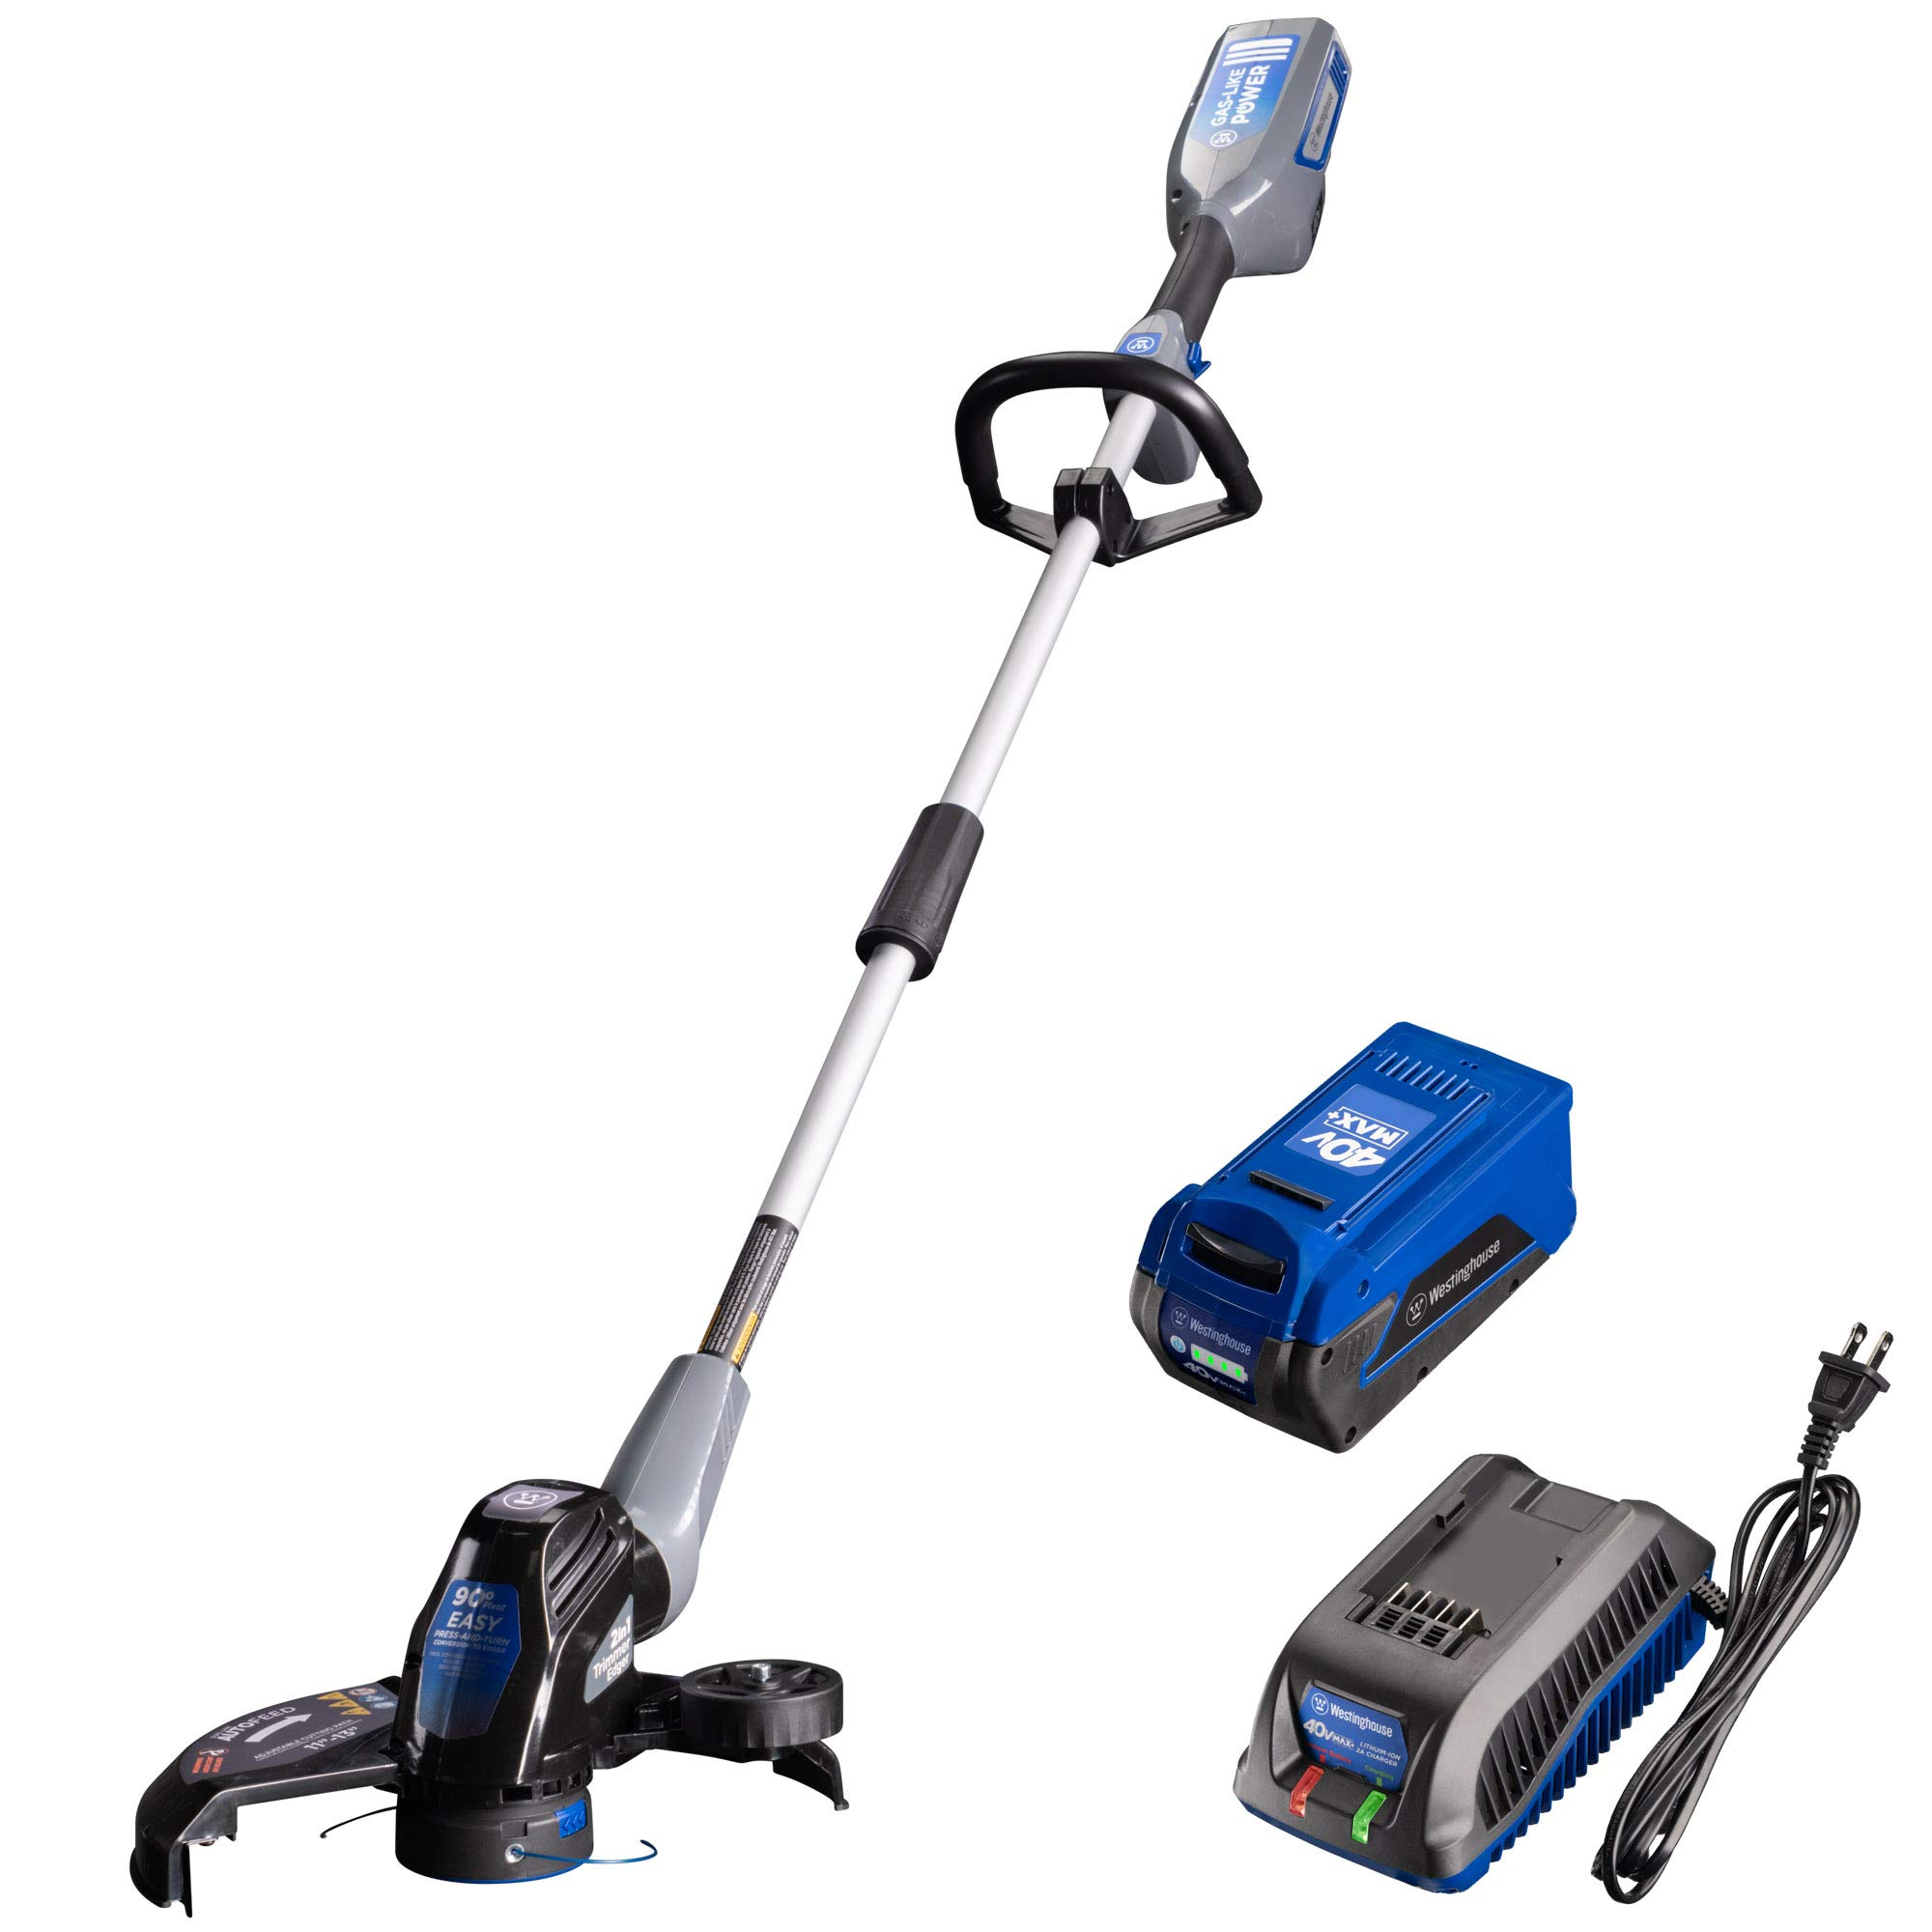 Westinghouse 40V Cordless String Trimmer, 2.5 Ah Battery and Charger Included